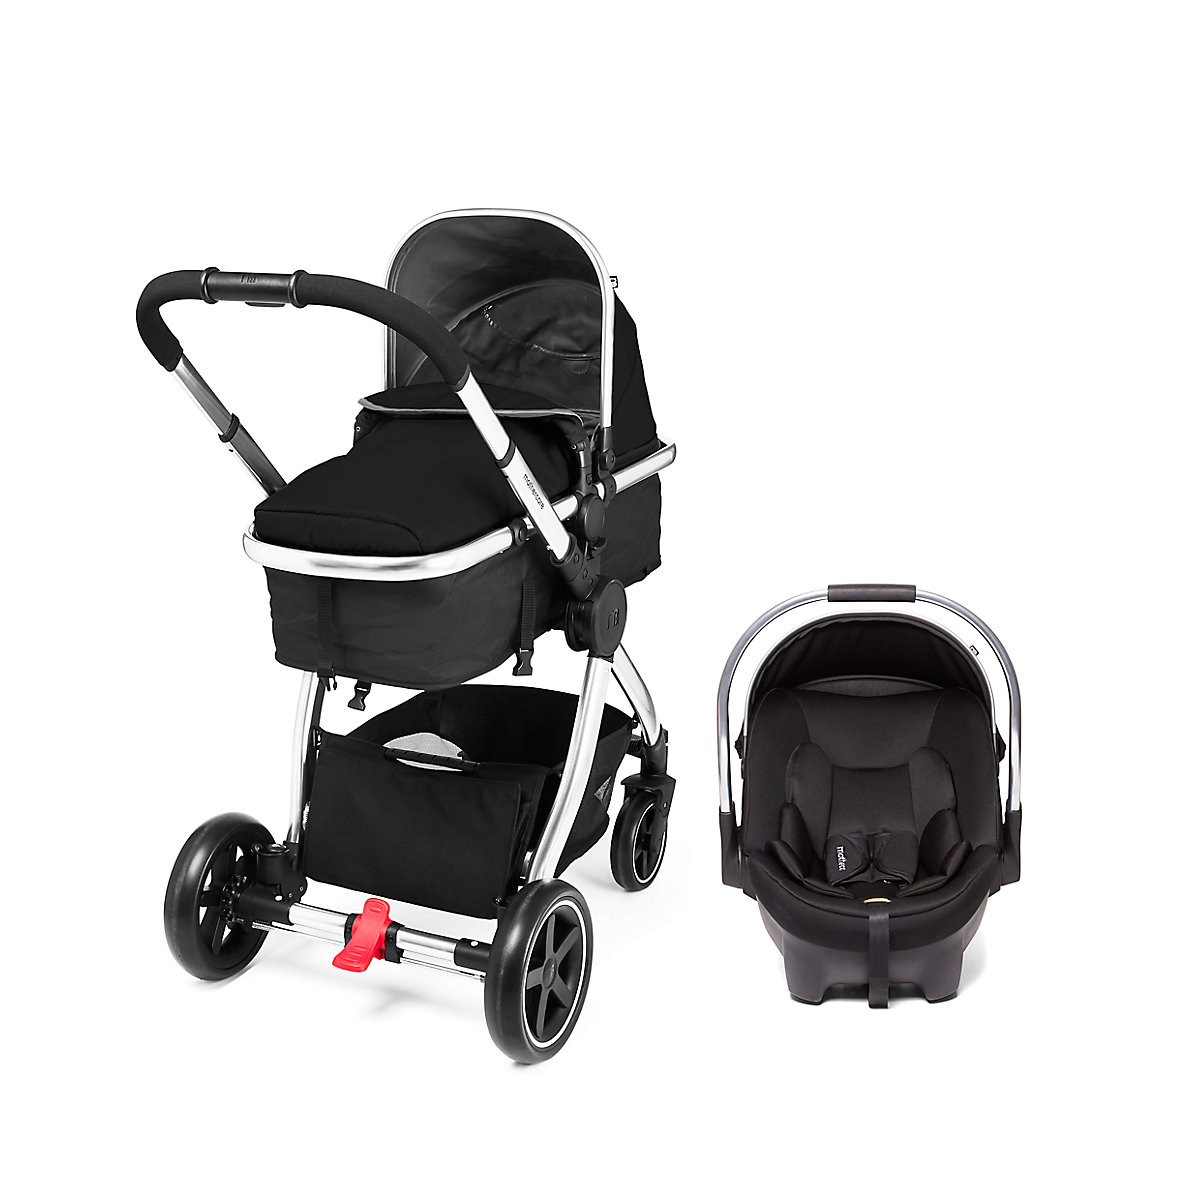 3 Wheel Buggy Vs 4 Wheel Mothercare 4 Wheel Journey Travel System Reviews